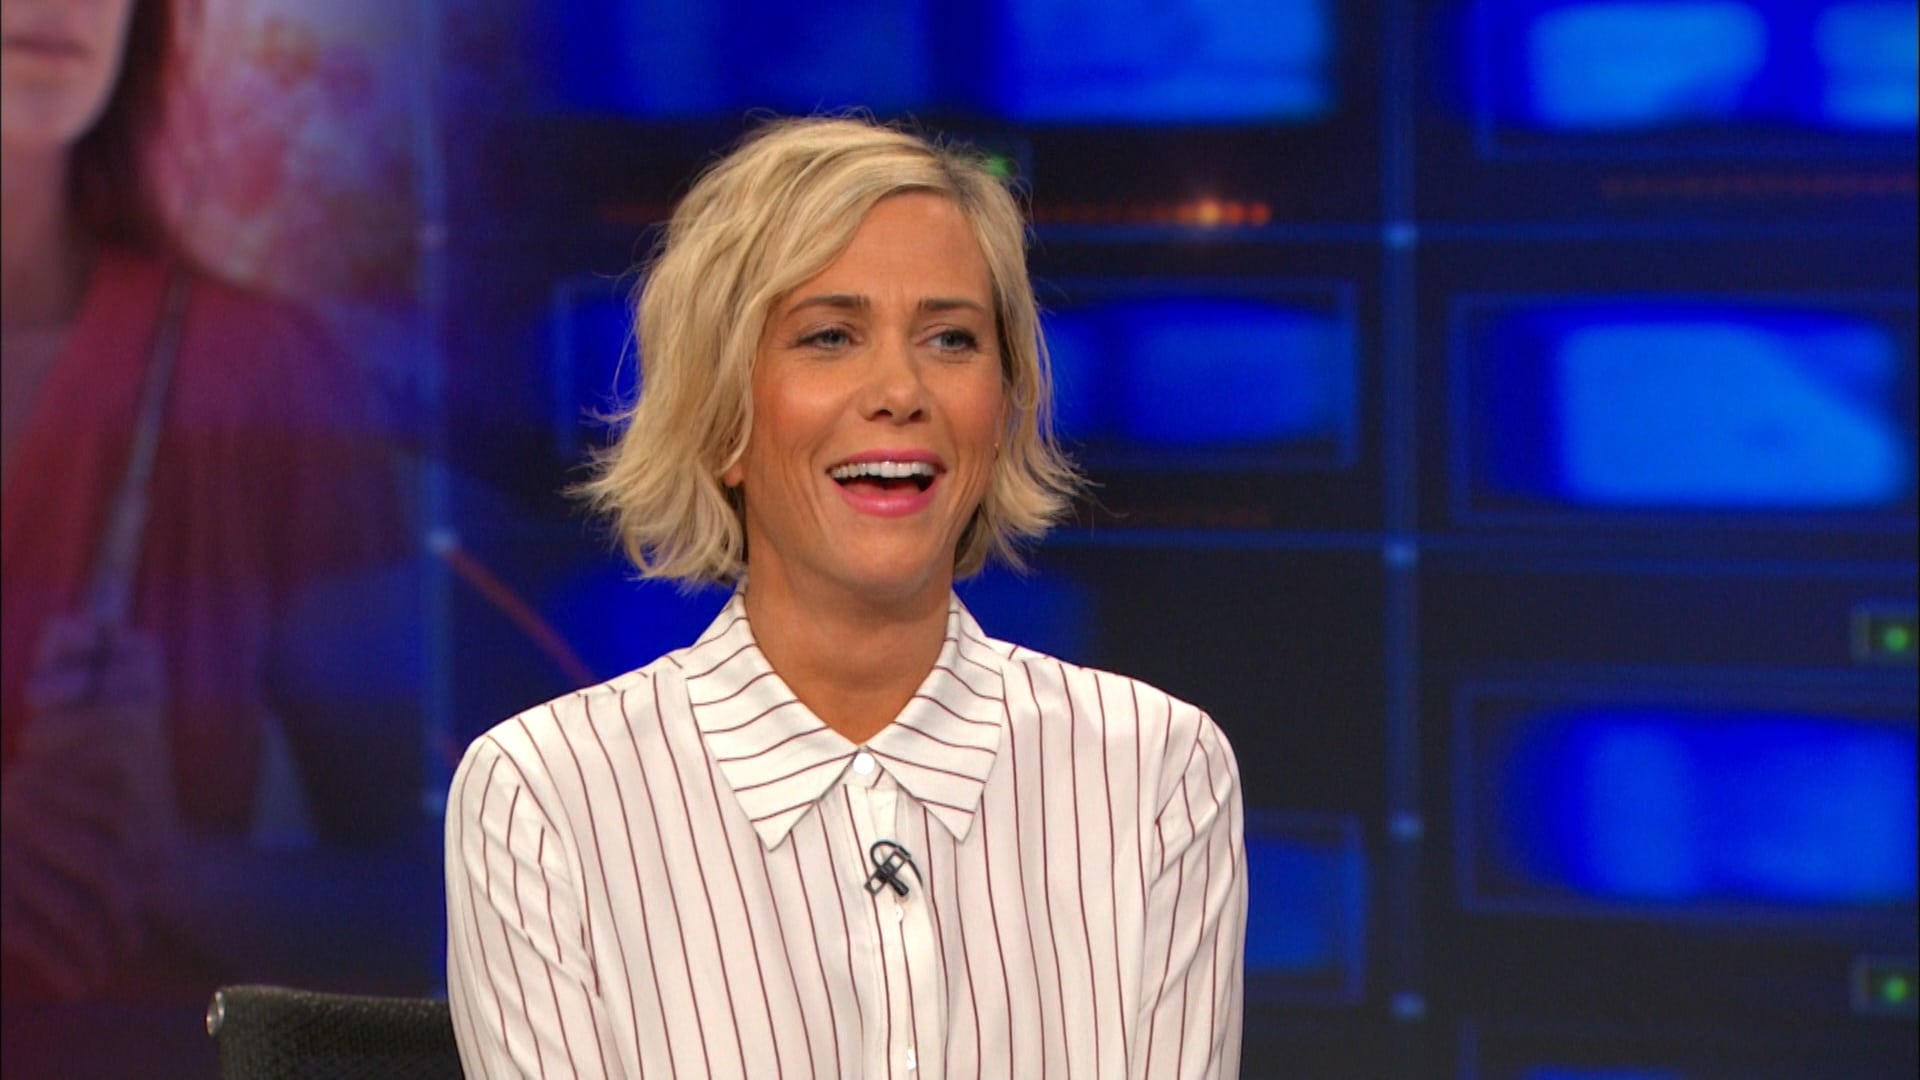 The Daily Show with Trevor Noah Season 20 :Episode 99  Kristen Wiig